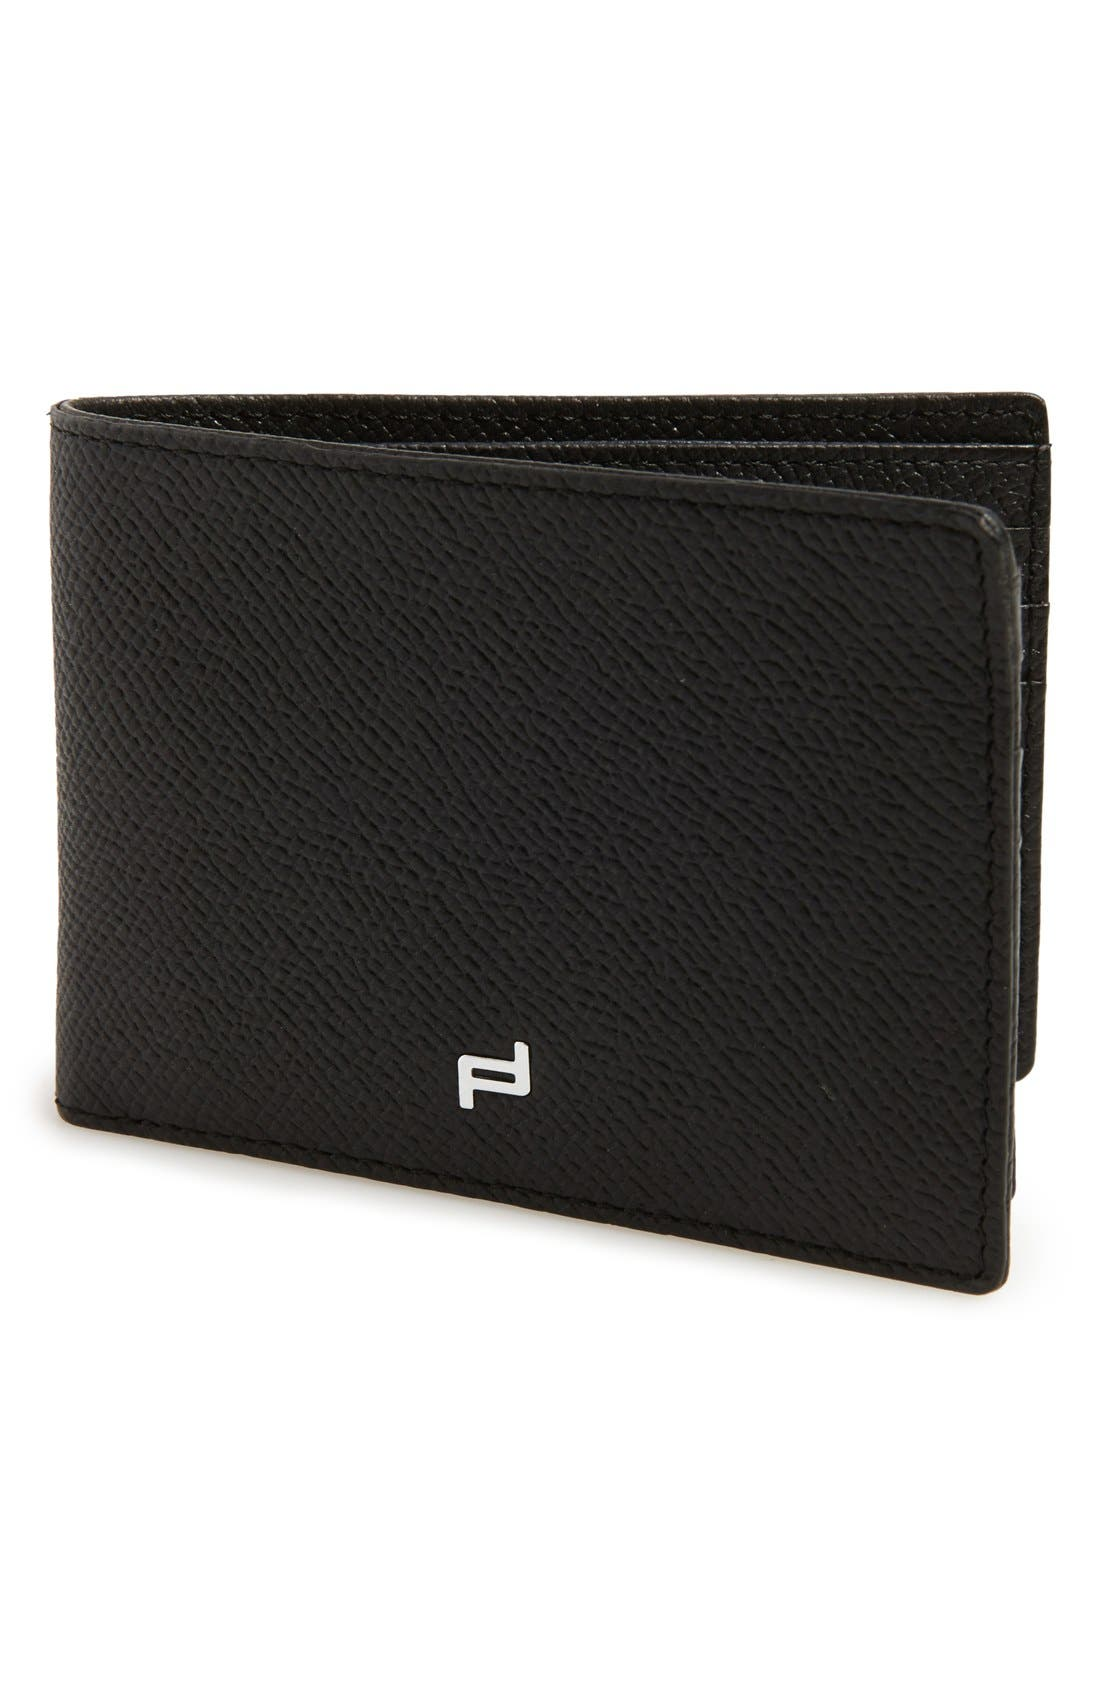 PORSCHE DESIGN FC 3.0 Leather L-Fold Wallet